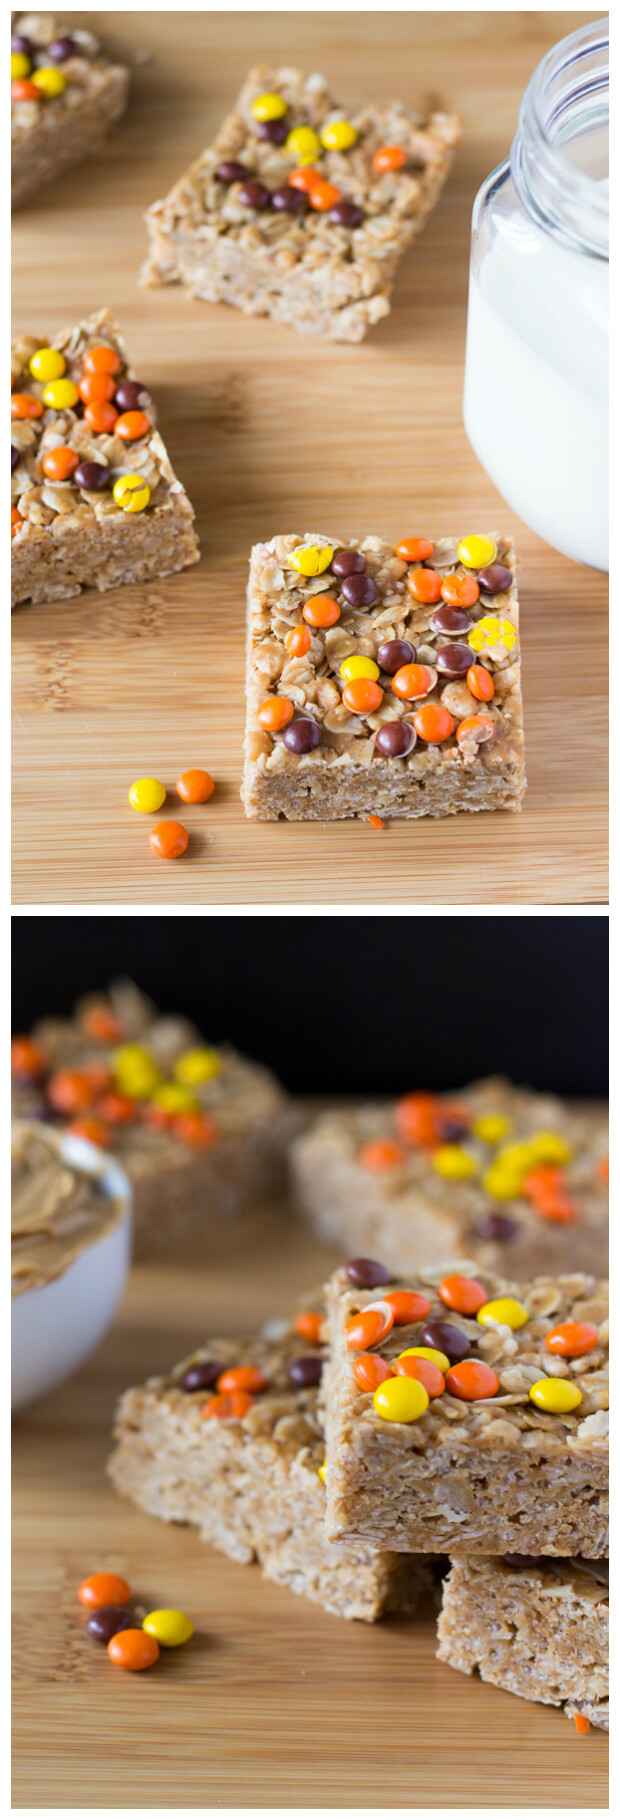 Make these super easy & super delicious Peanut Butter Granola Bars. Topped with Reese's Pieces - kids & adults will love these treats.